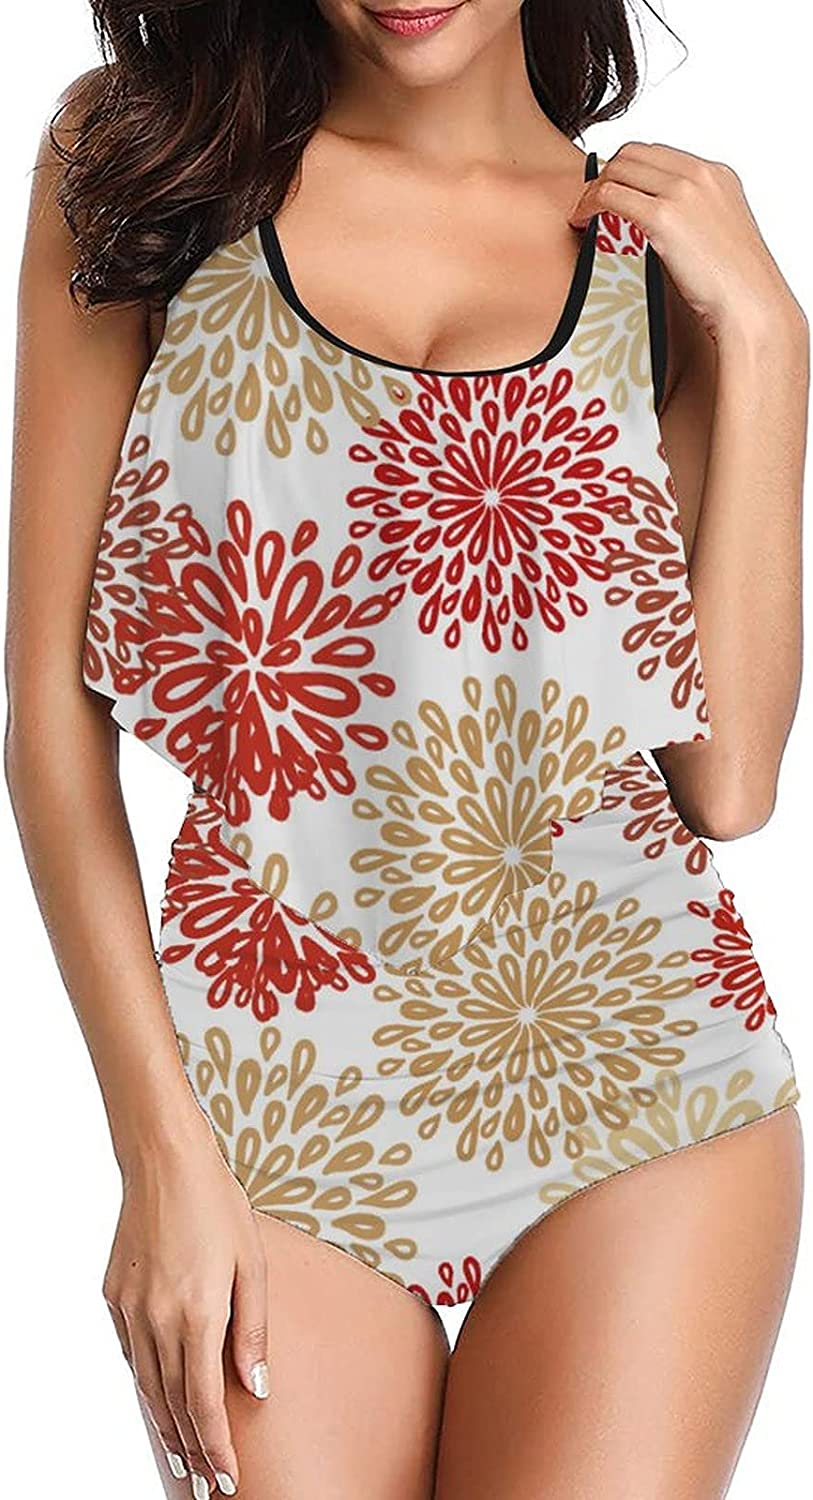 Women Floral Pattern-16 Swimsuits Original Tankinis top with High Waist Bottom Bikini Set Two Pieces Bathing Suit